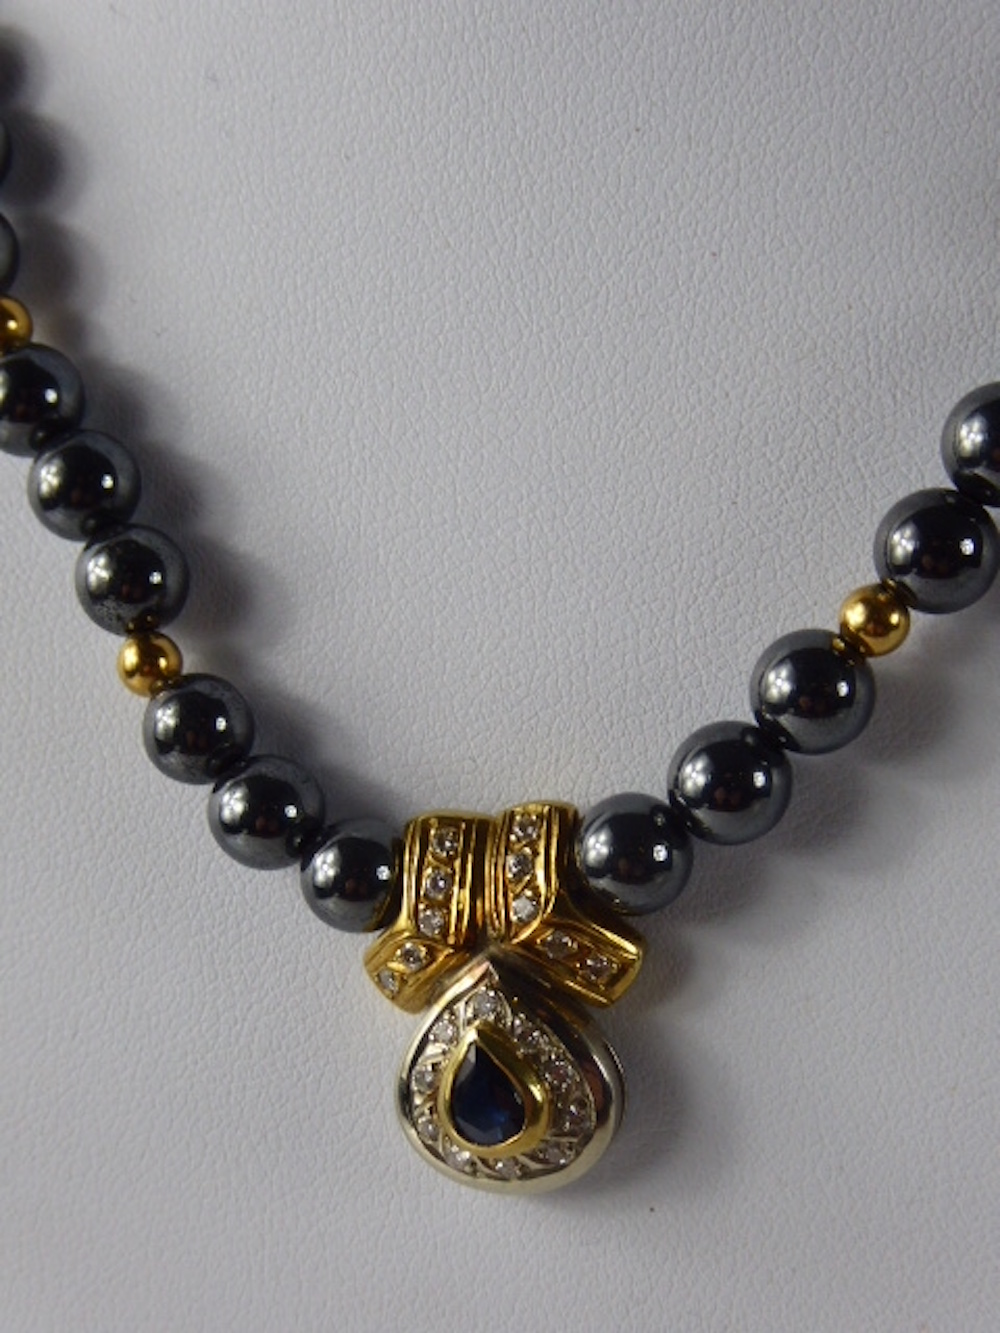 Hematite Diamond and Sapphire Necklace £180